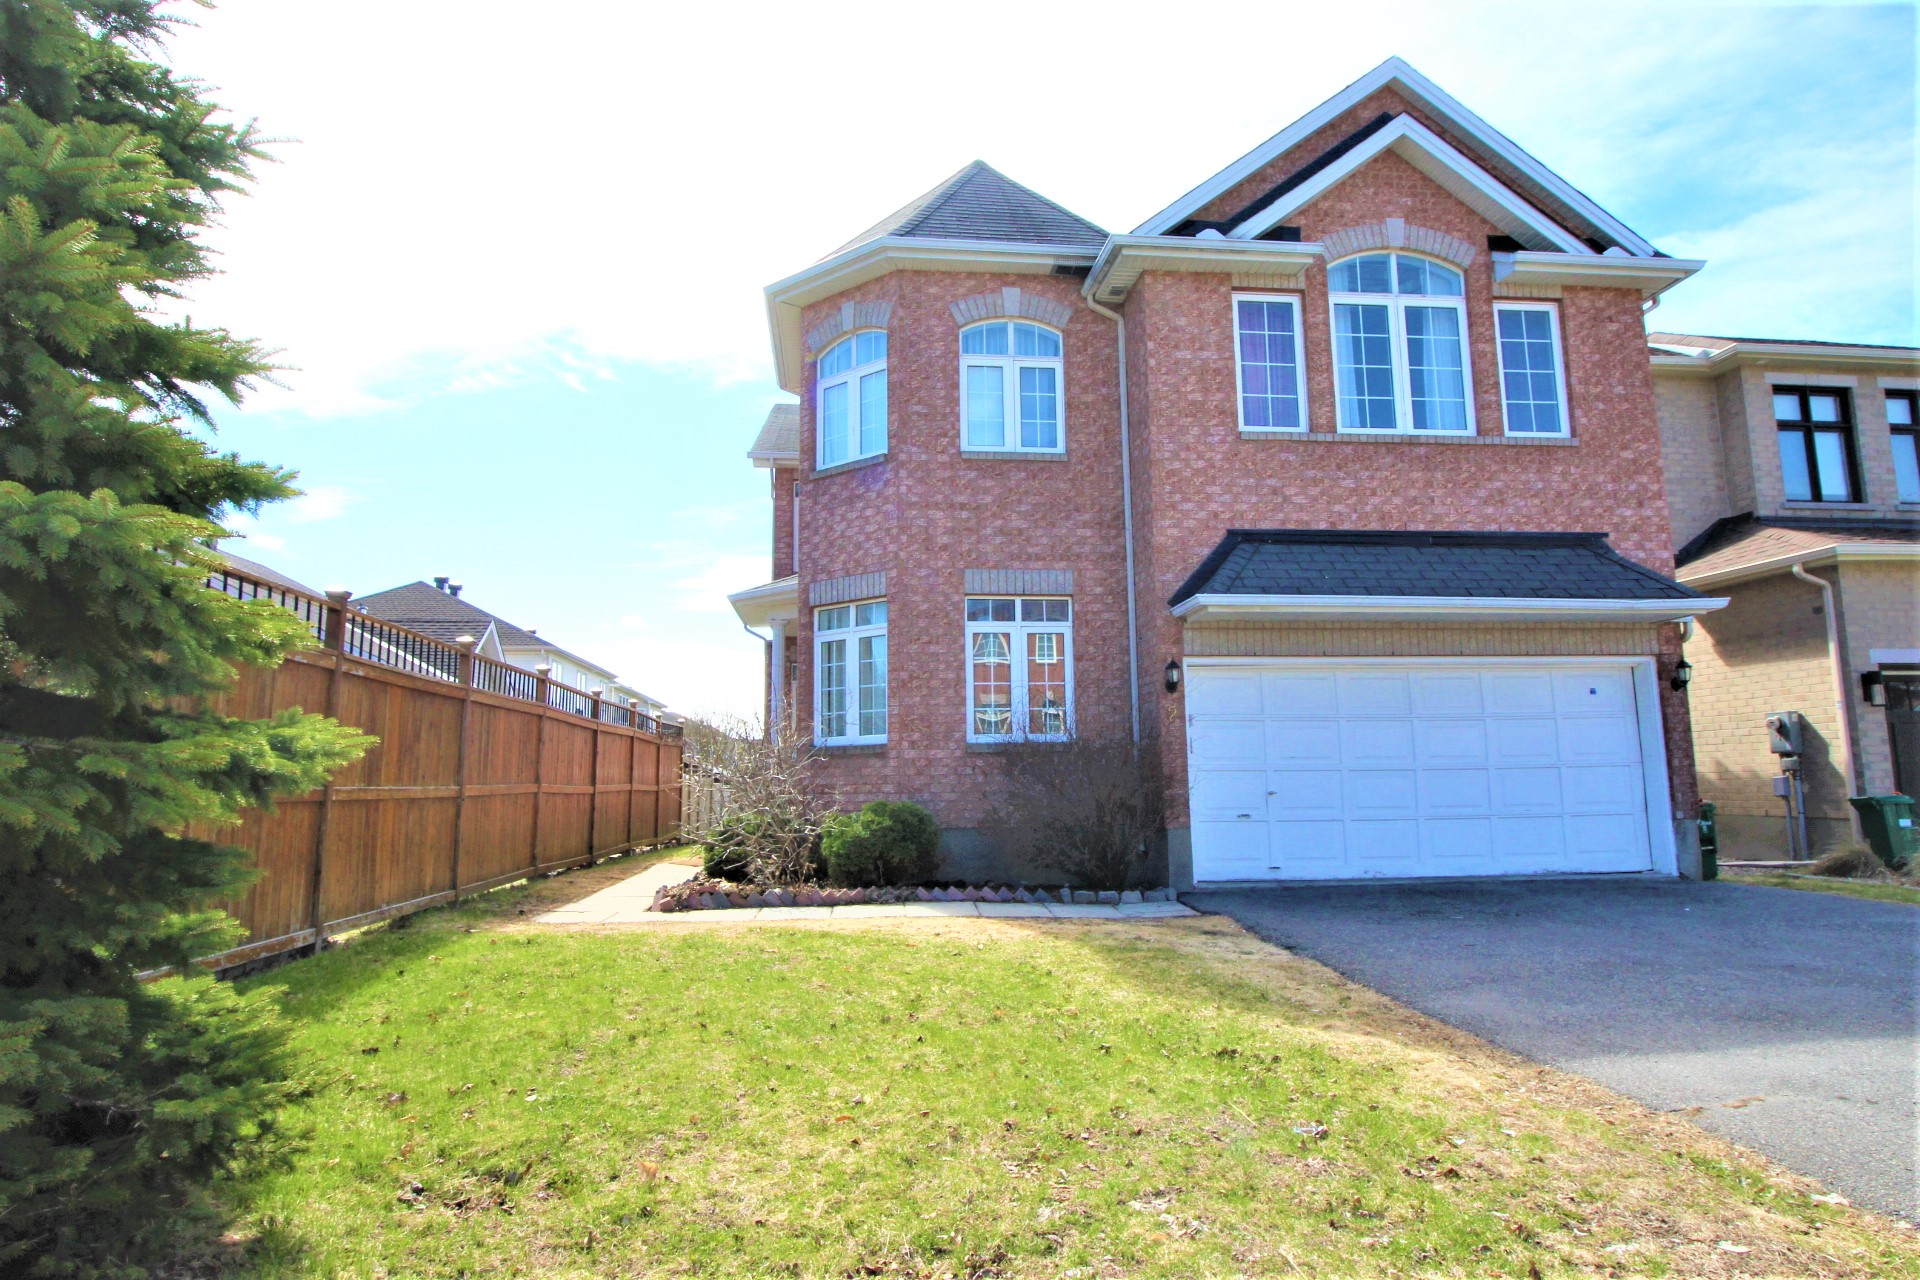 2 Grenwich Circle -  For RENT - Exceptional Executive Home in Central Park